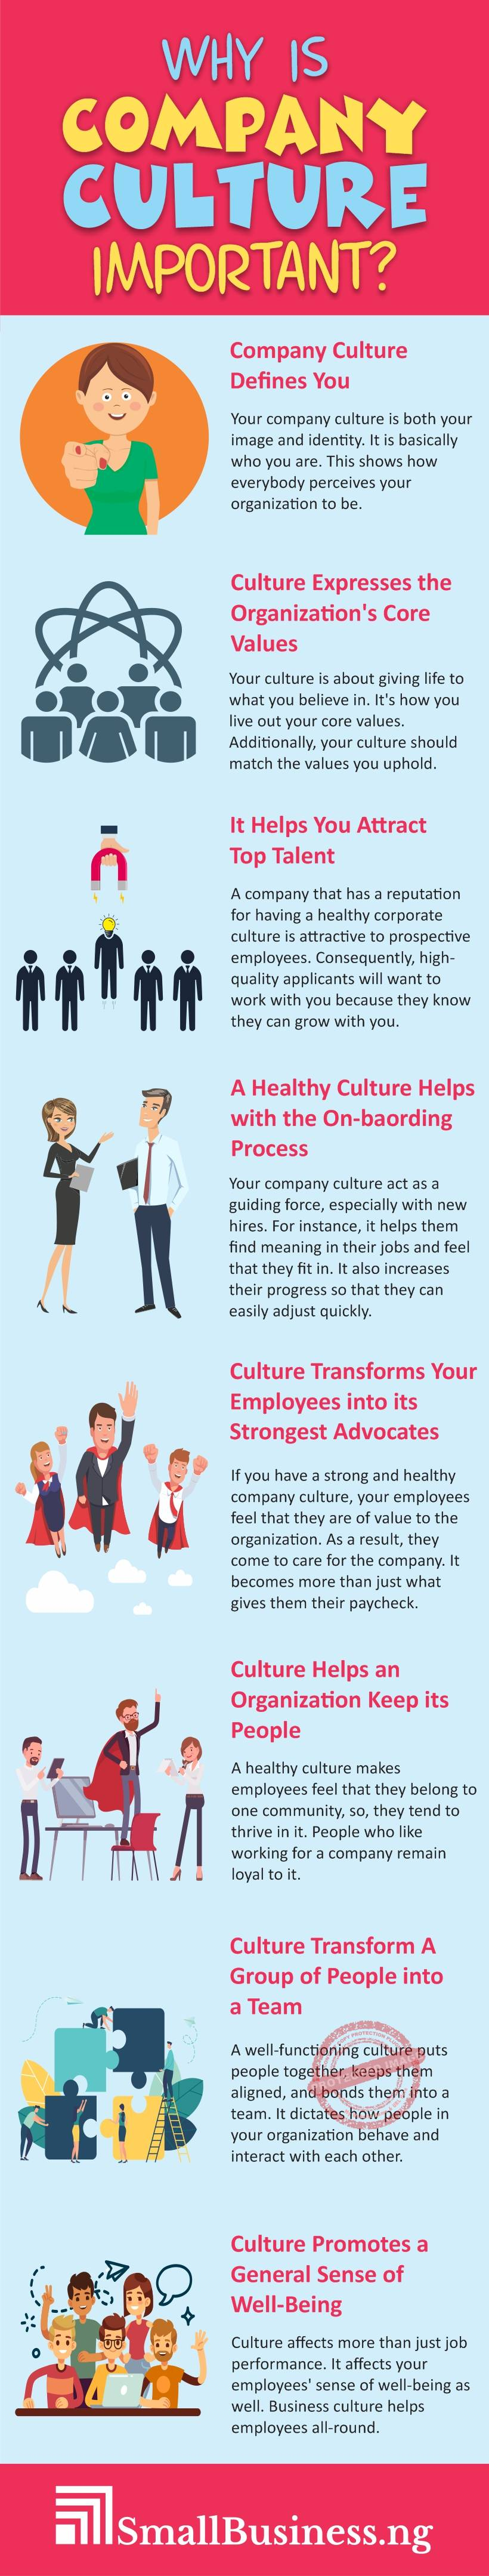 Why Is Company Culture Important Infographic